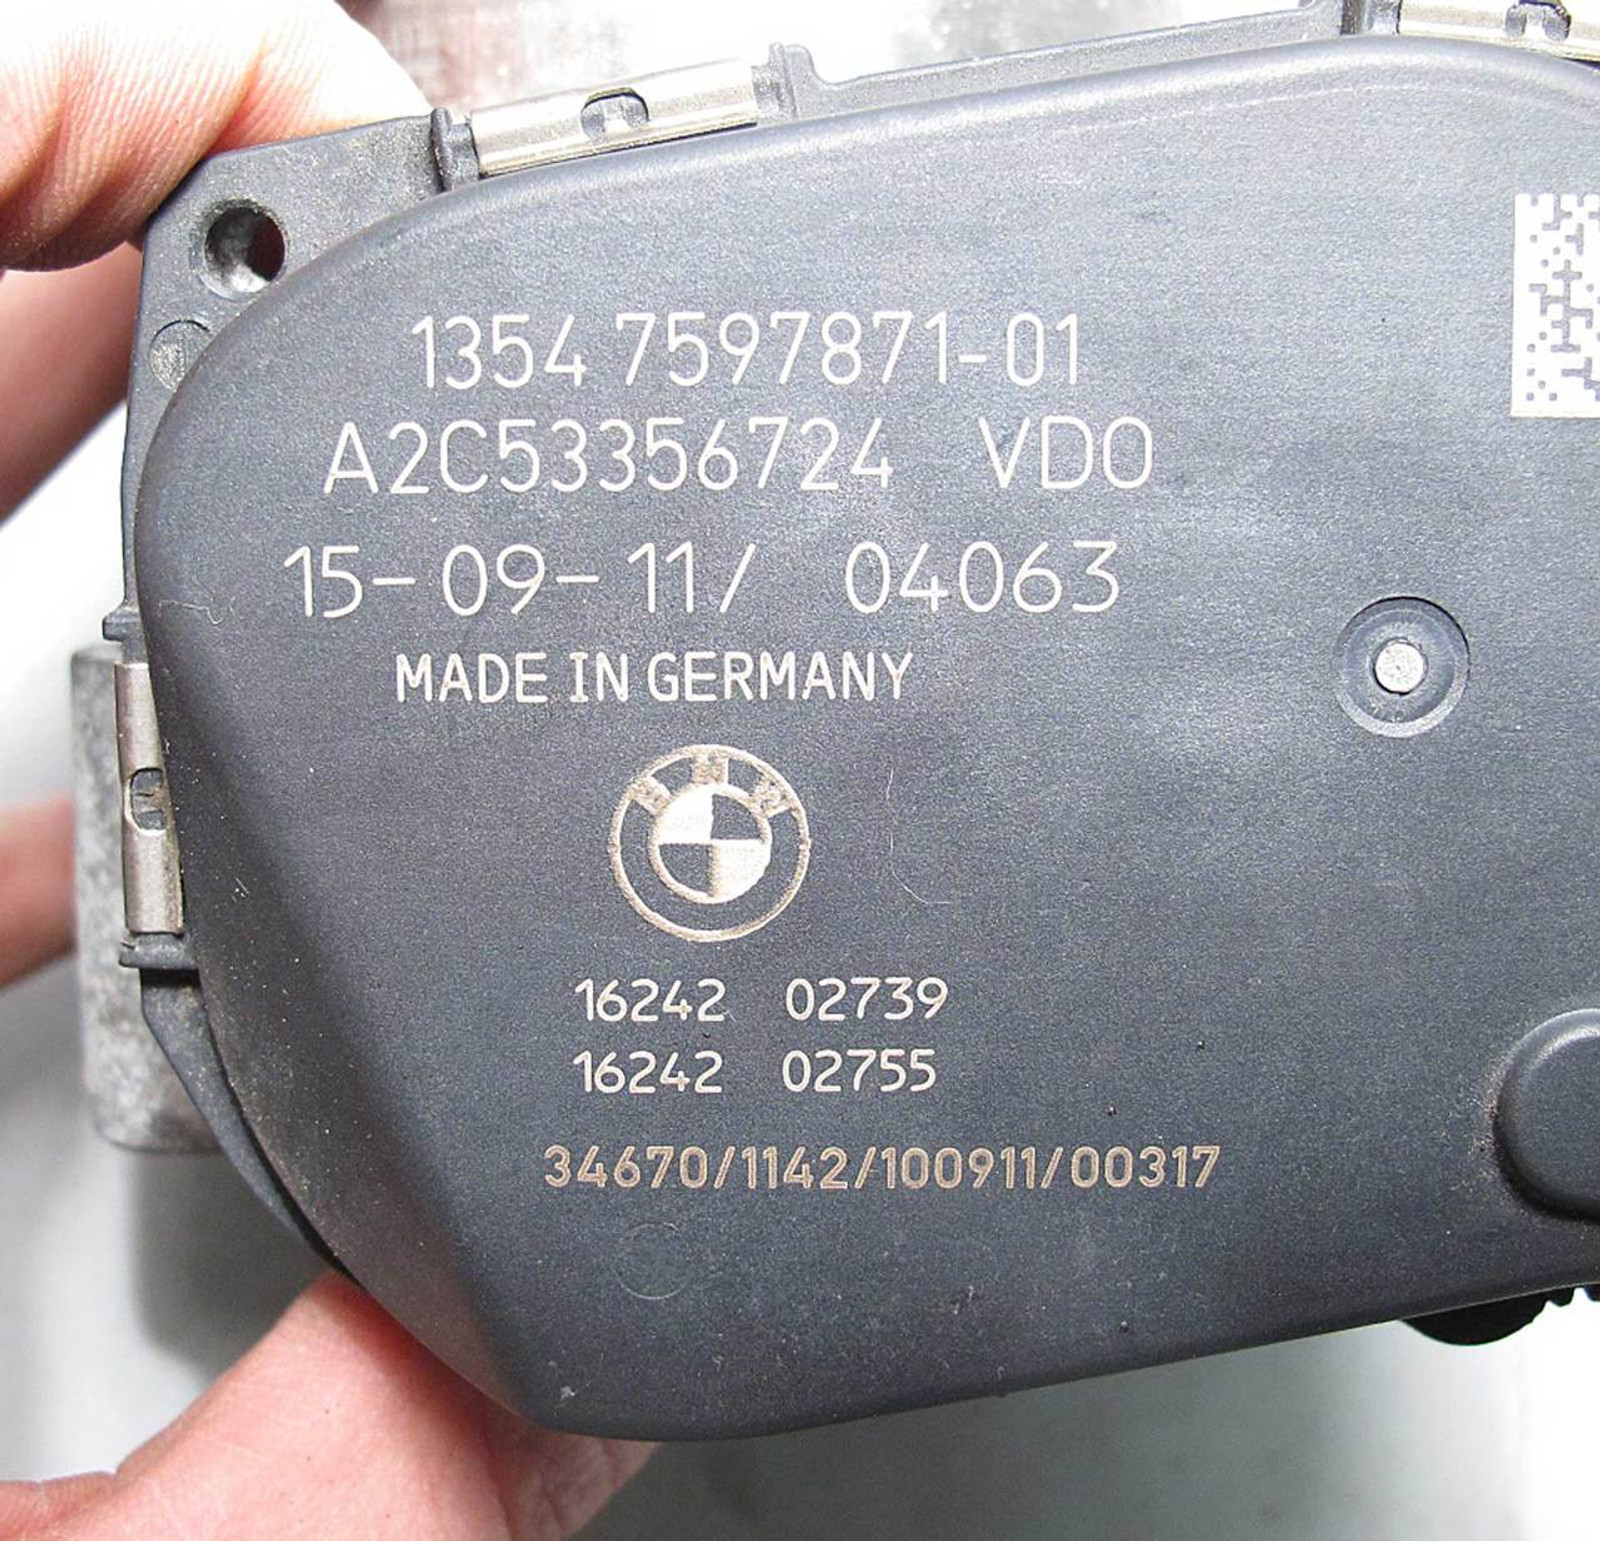 2011-2015 BMW N55 Turbo 6-Cyl Electronic Throttle Body Actuator E90 F30 F10 USED